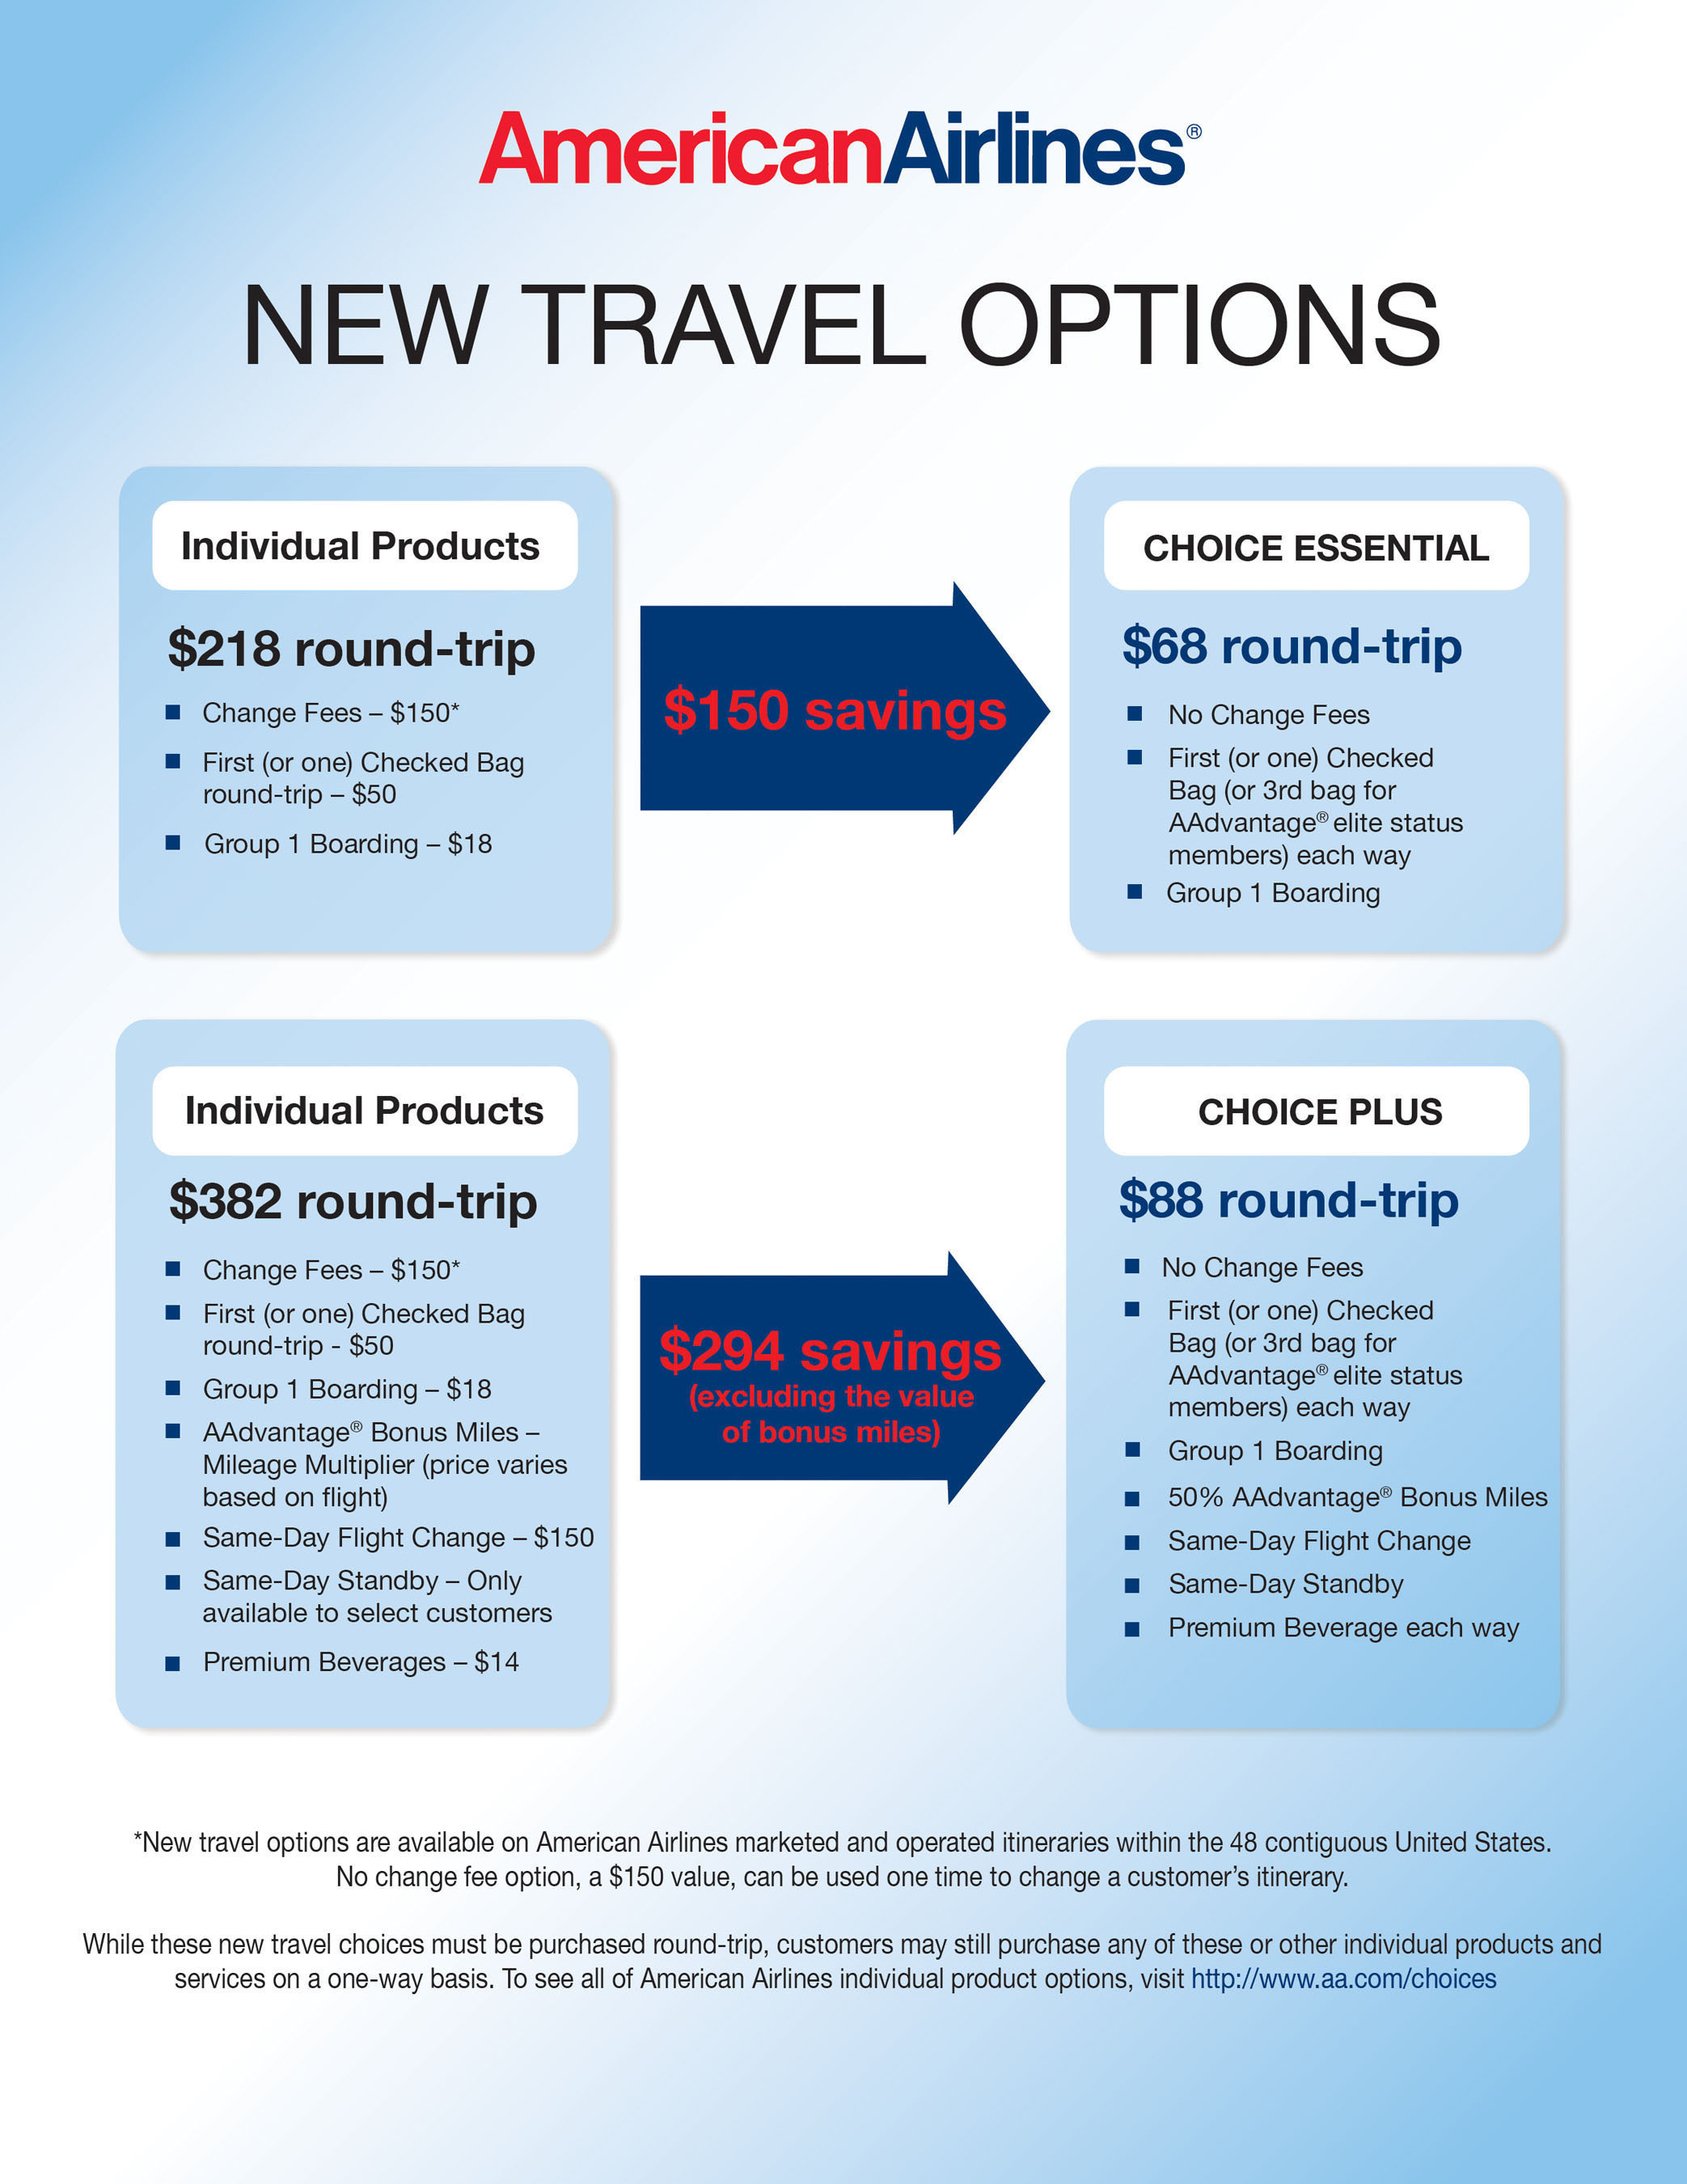 American Airlines Introduces New Travel Options Offering Customers More Choices